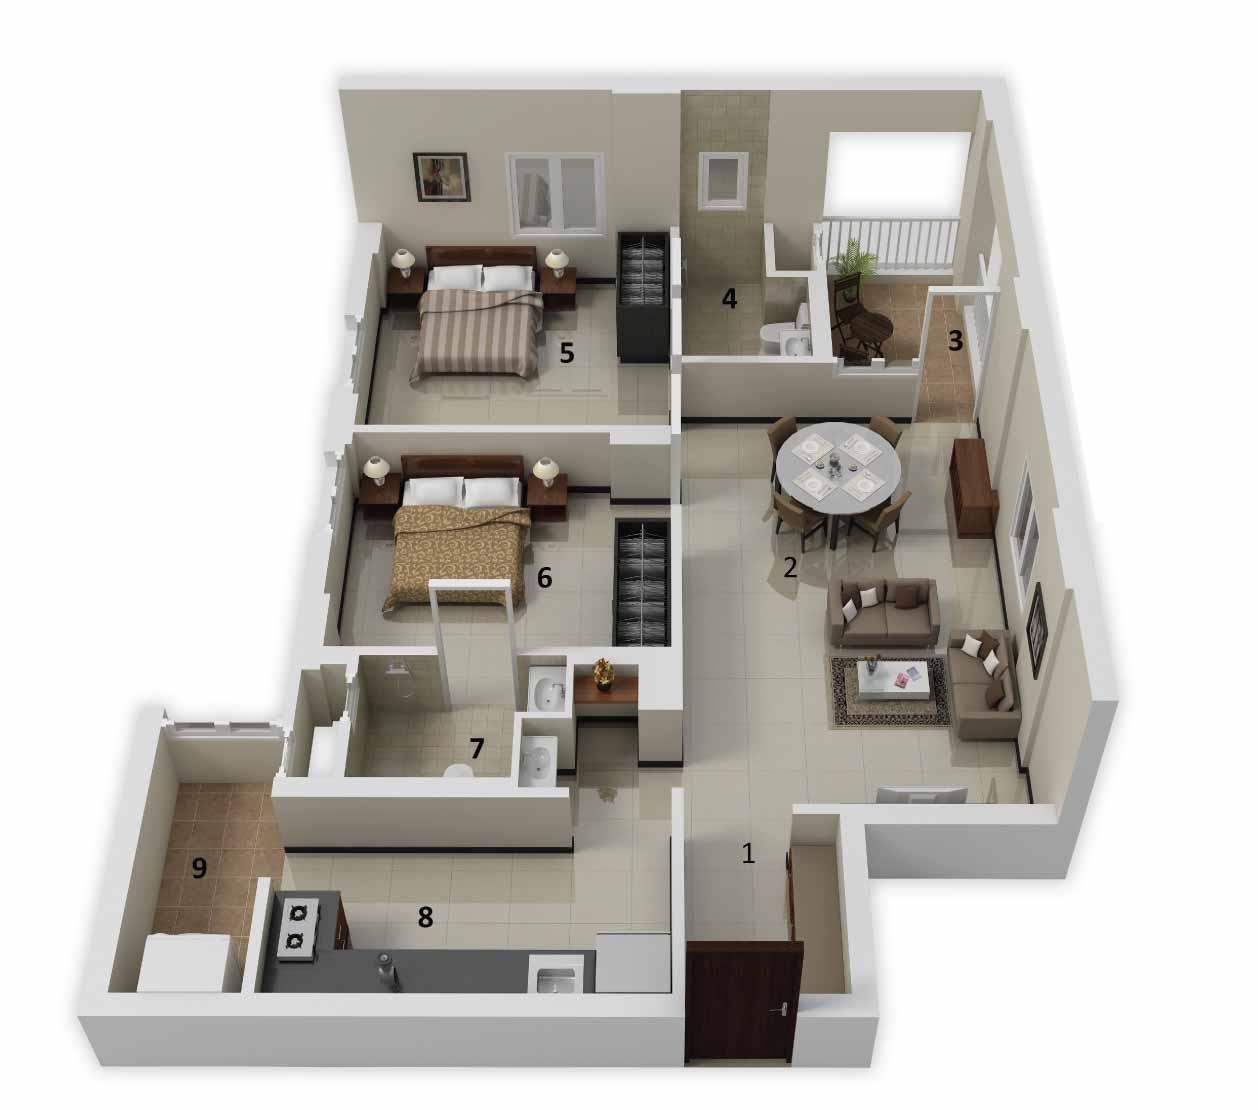 Superieur Simple Floor Plan Design. Simple Floor Plan Design B